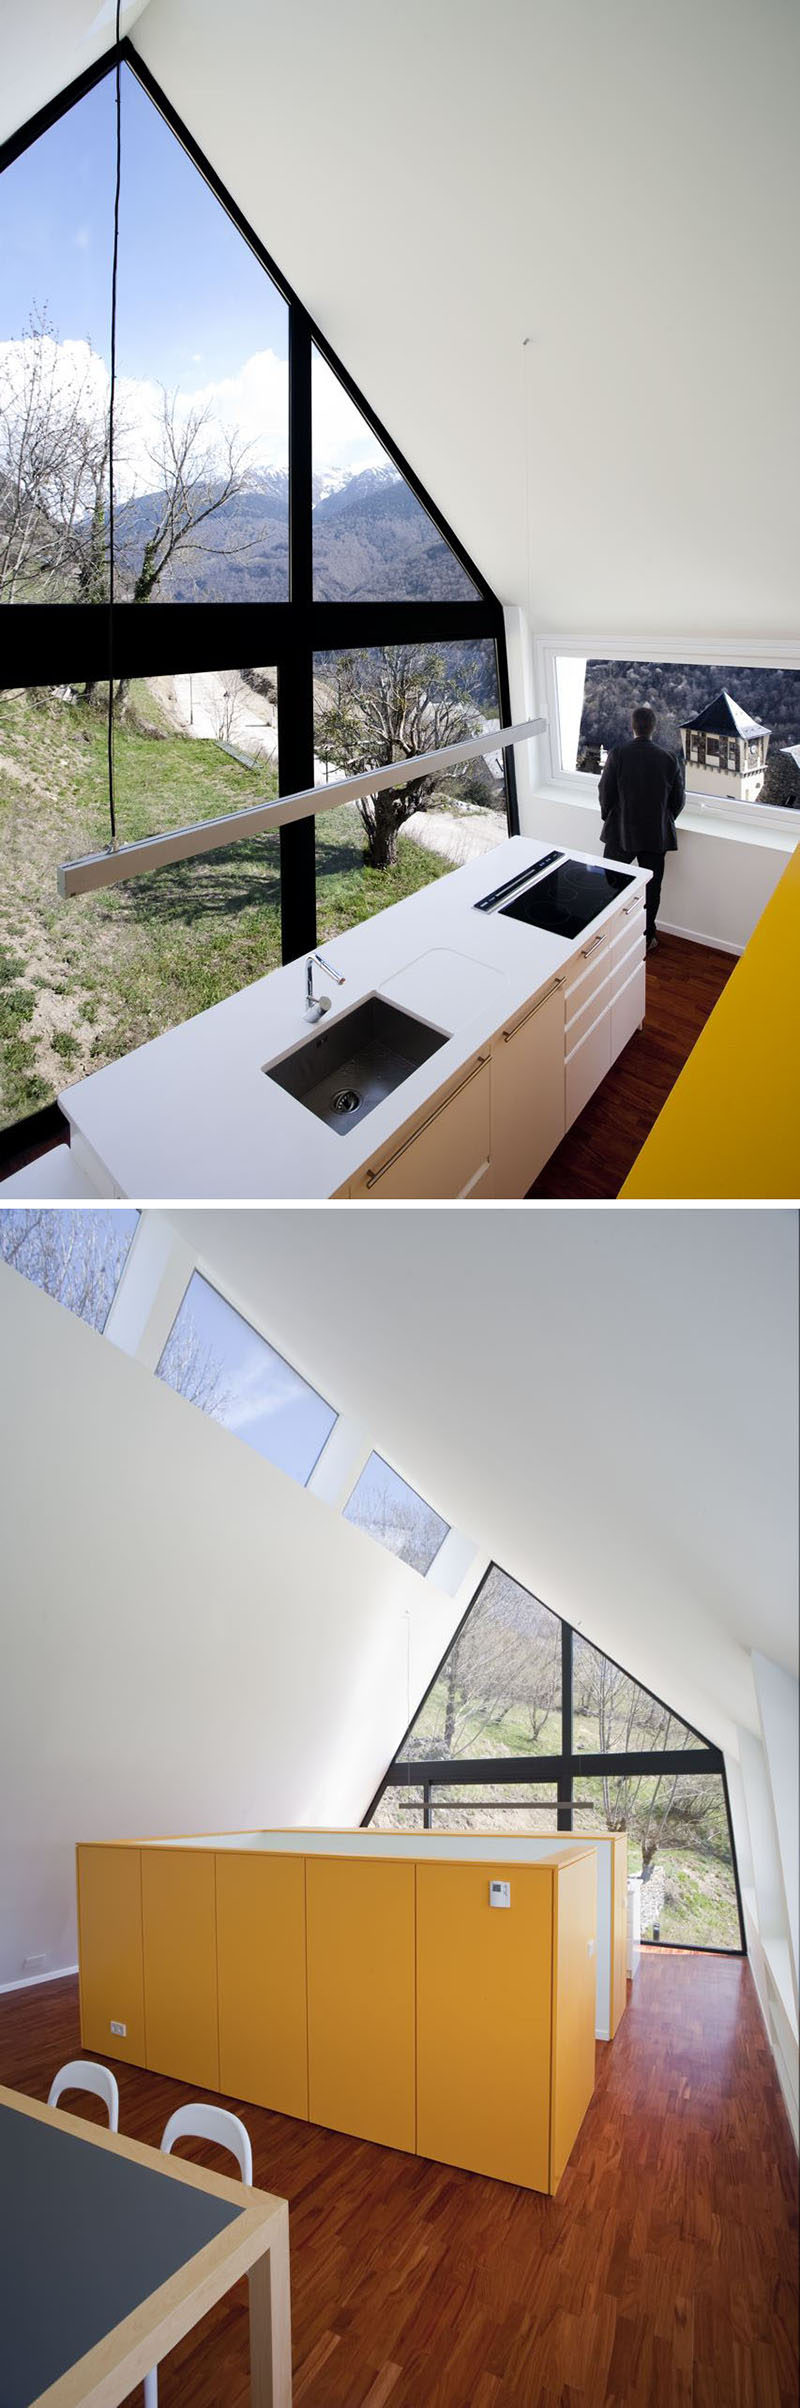 15 Awesome Examples Where Windows Follow The Roofline // The black frames of the this floor to ceiling window align with the edges of the roof and create a striking contrast with the white walls.